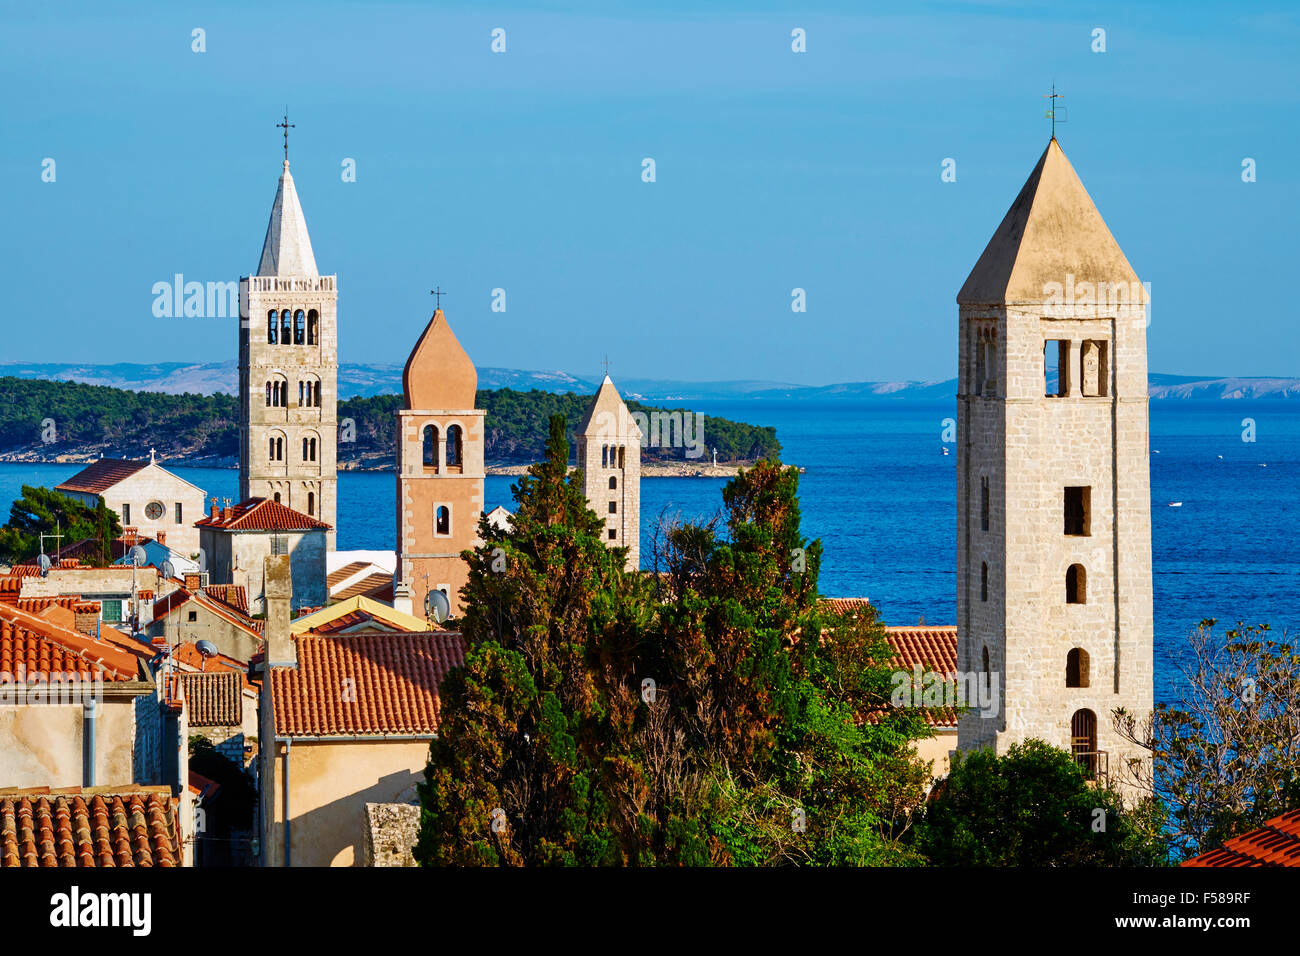 Croatia, Kvarner bay, island and city of Rab, succession of bell towers - Stock Image